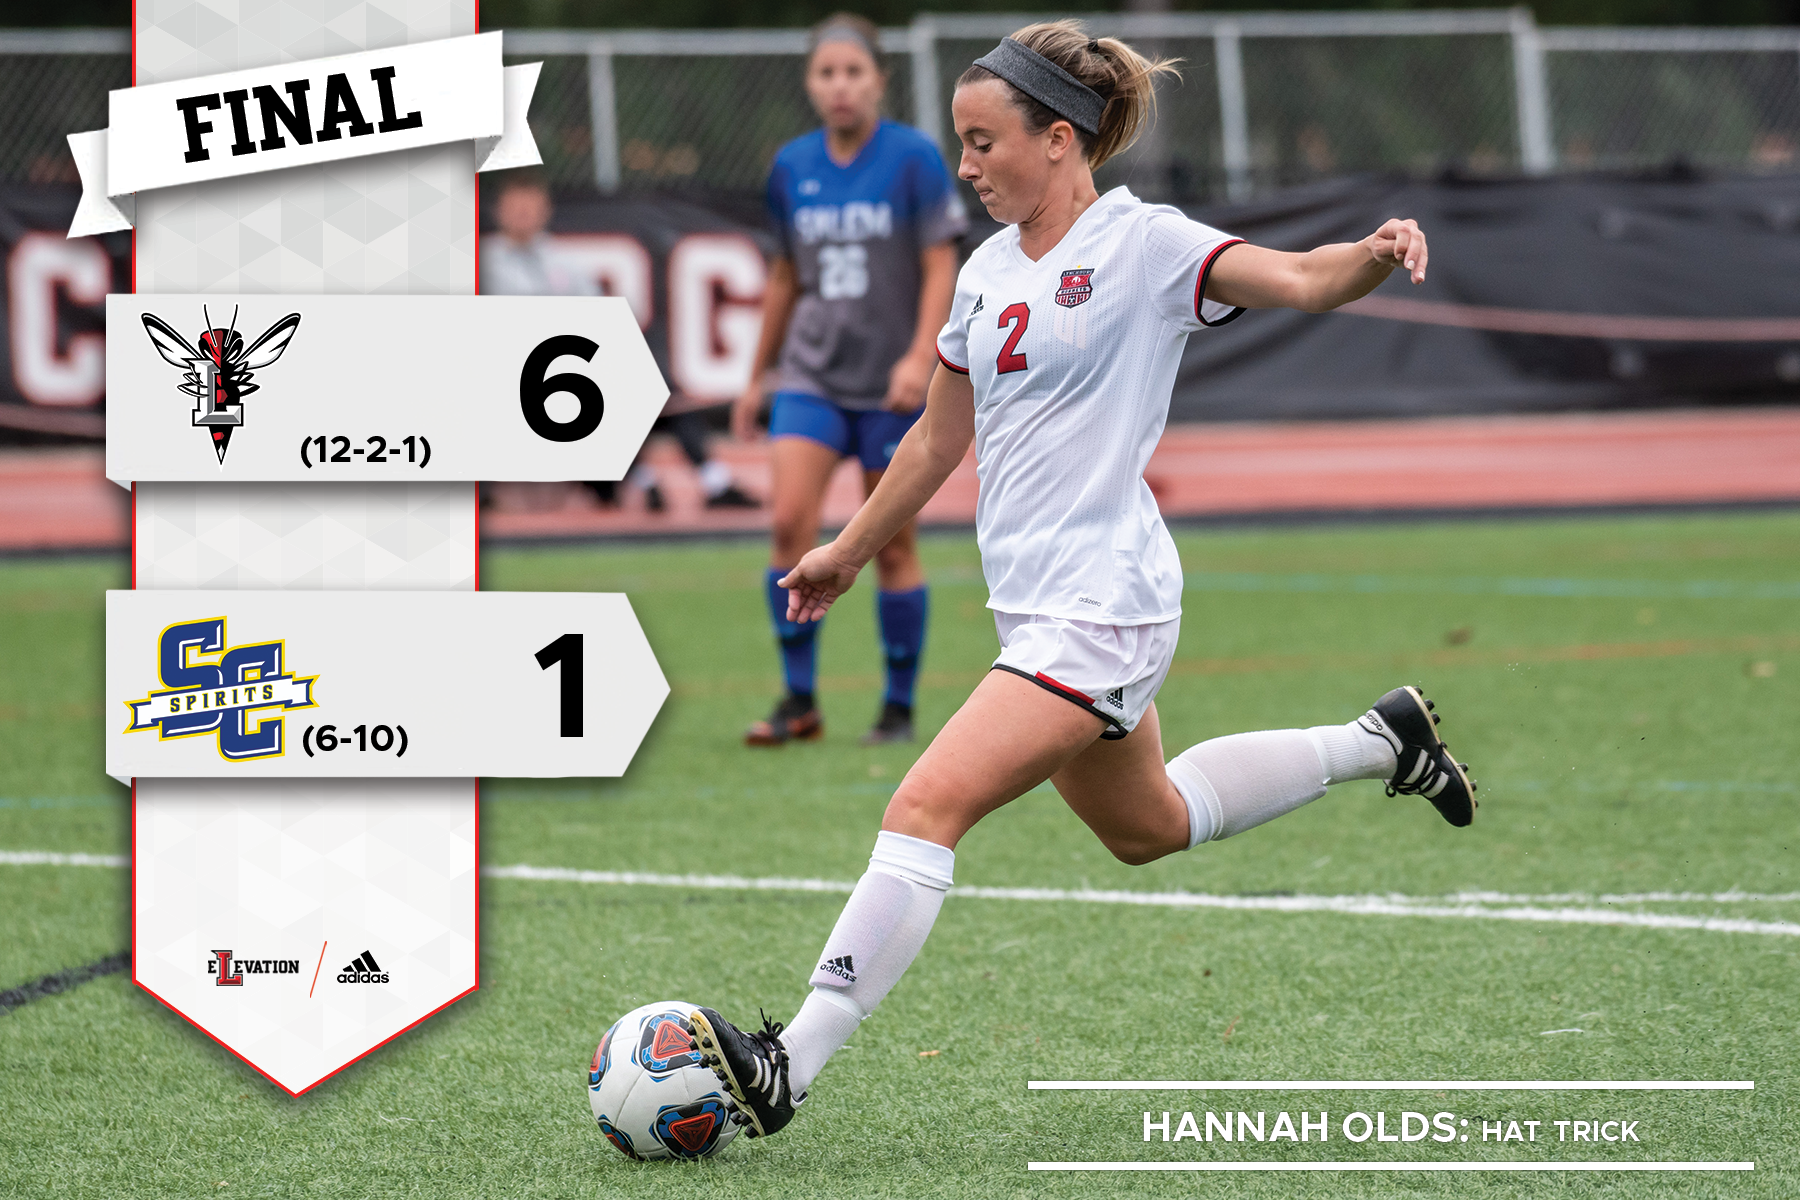 Hannah Olds kicking a soccer ball. Graphic showing 6-1 final score.